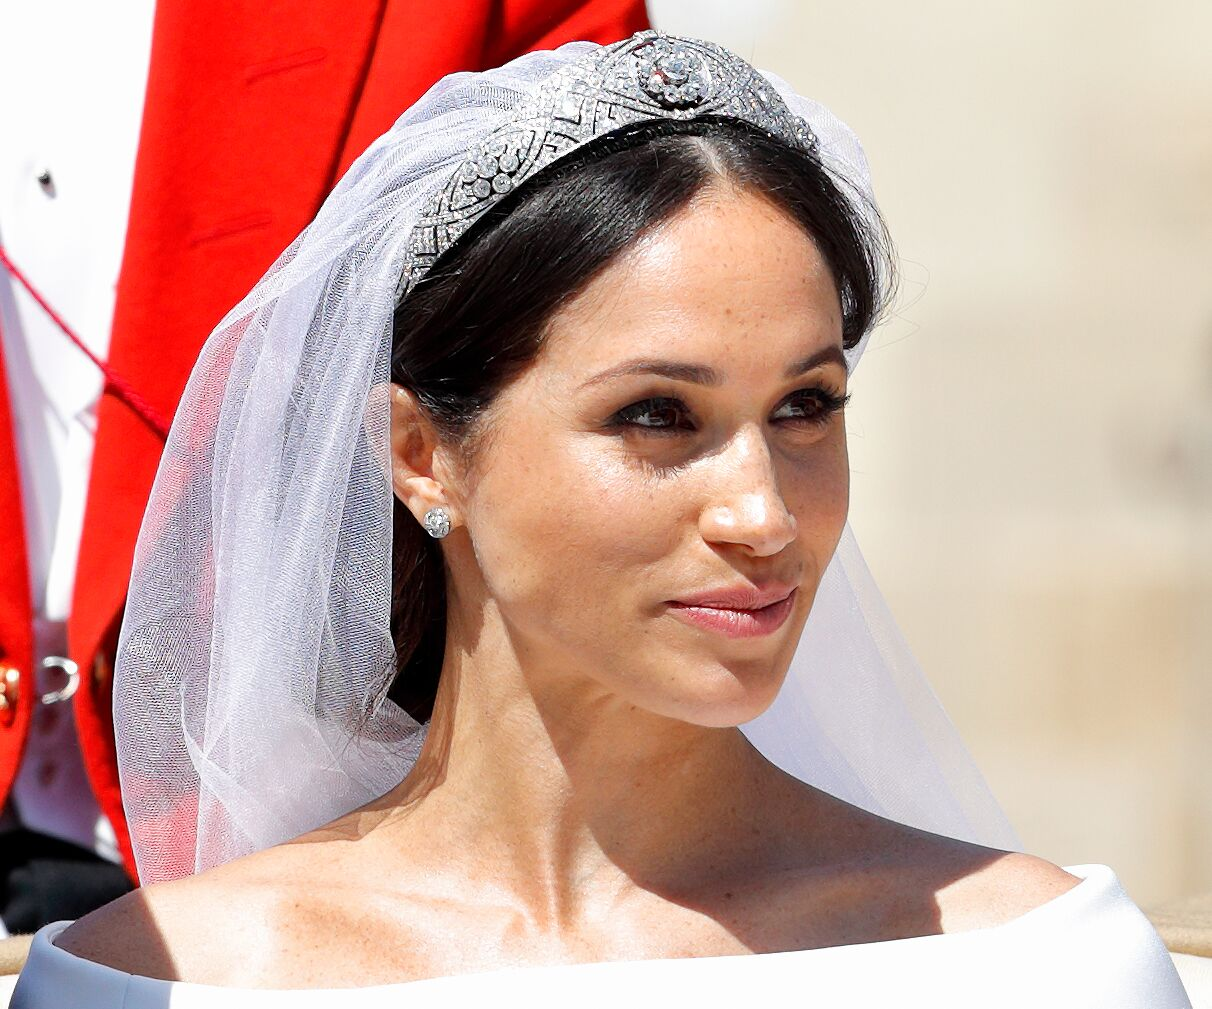 Meghan Markle on her wedding day/ Source: Getty Images